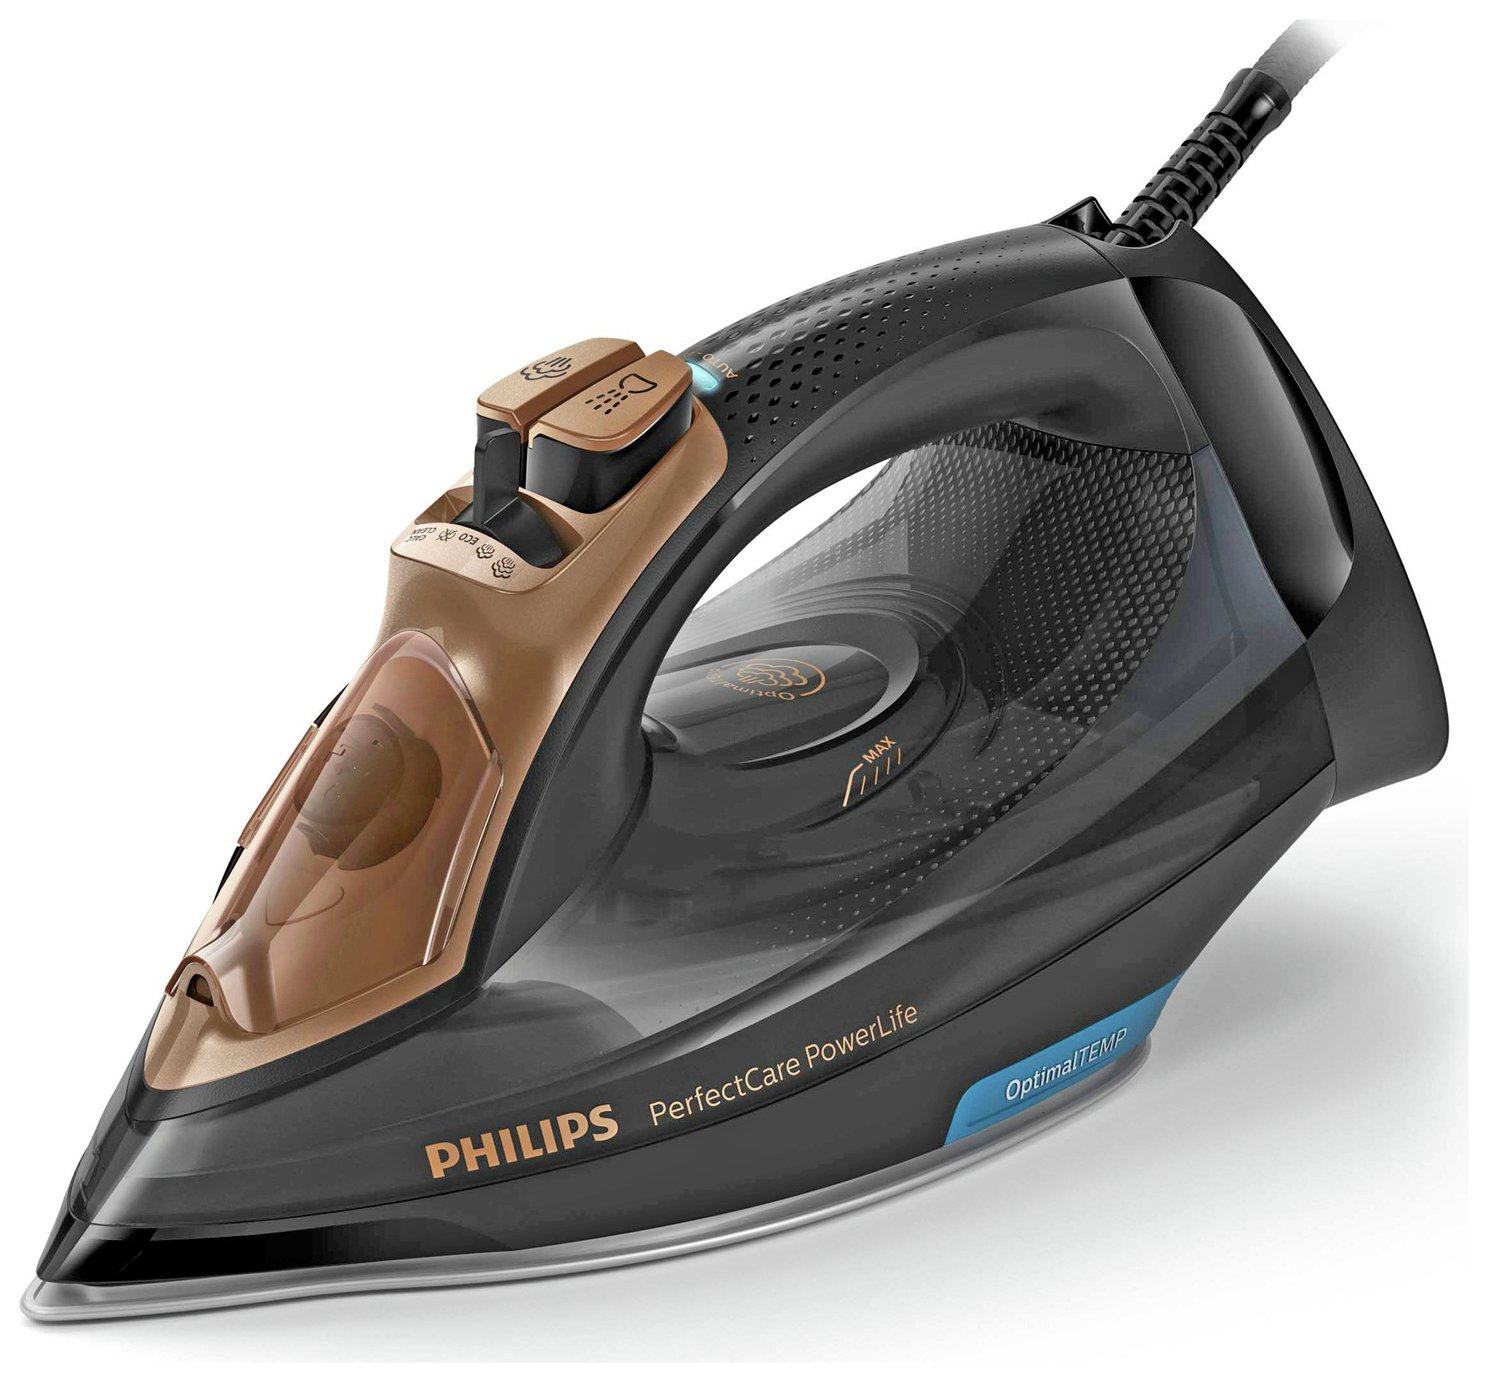 Philips GC3929/66 Perfectcare Powerlife Steam Iron